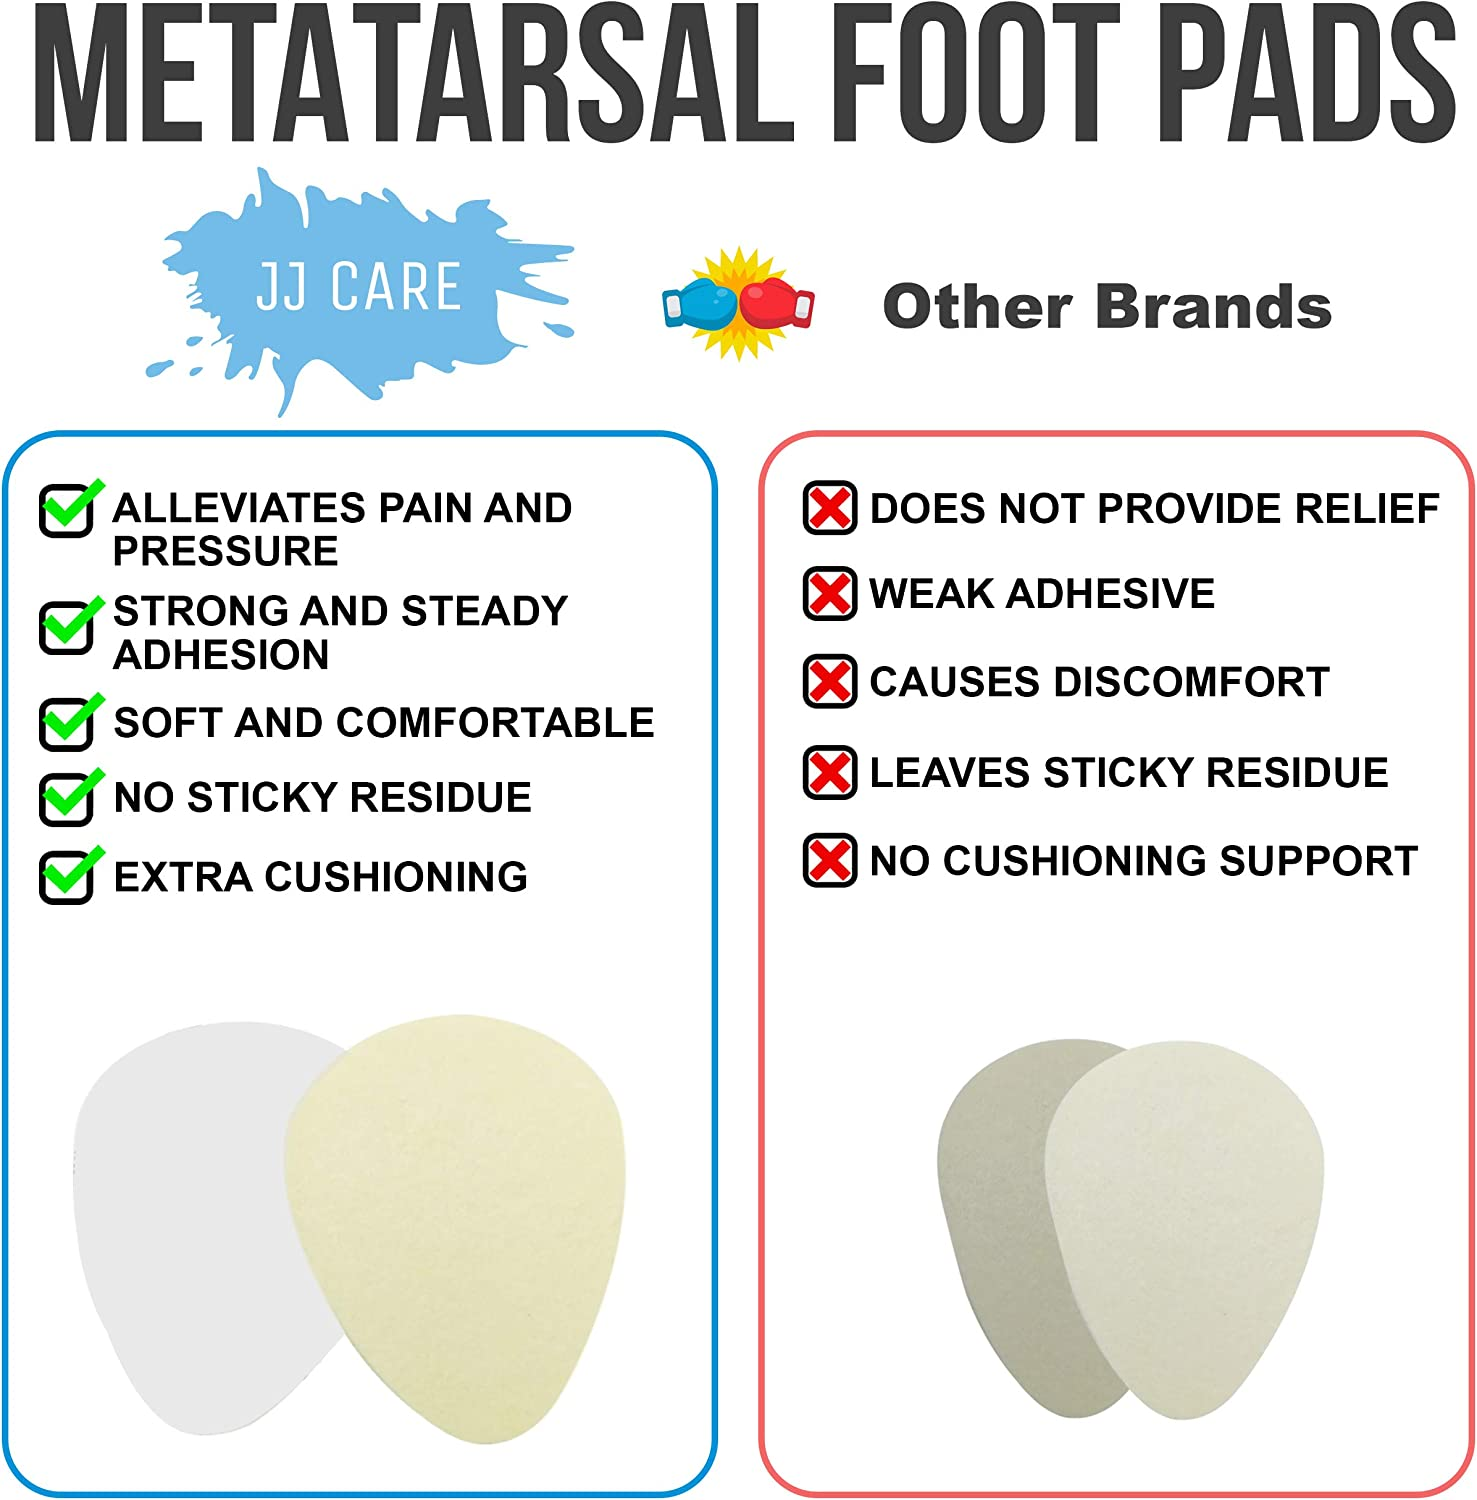 """[16-Pack] Metatarsal Foot Pads, Foot Pain Relief, 1/4"""" Thick Felt Foot Pads Support for Men and Women, Metatarsal Pads Ball of Foot Support, High Heels Pain Relief Podiatrist Recommended (2.75""""x2.4""""): Health & Personal Care"""